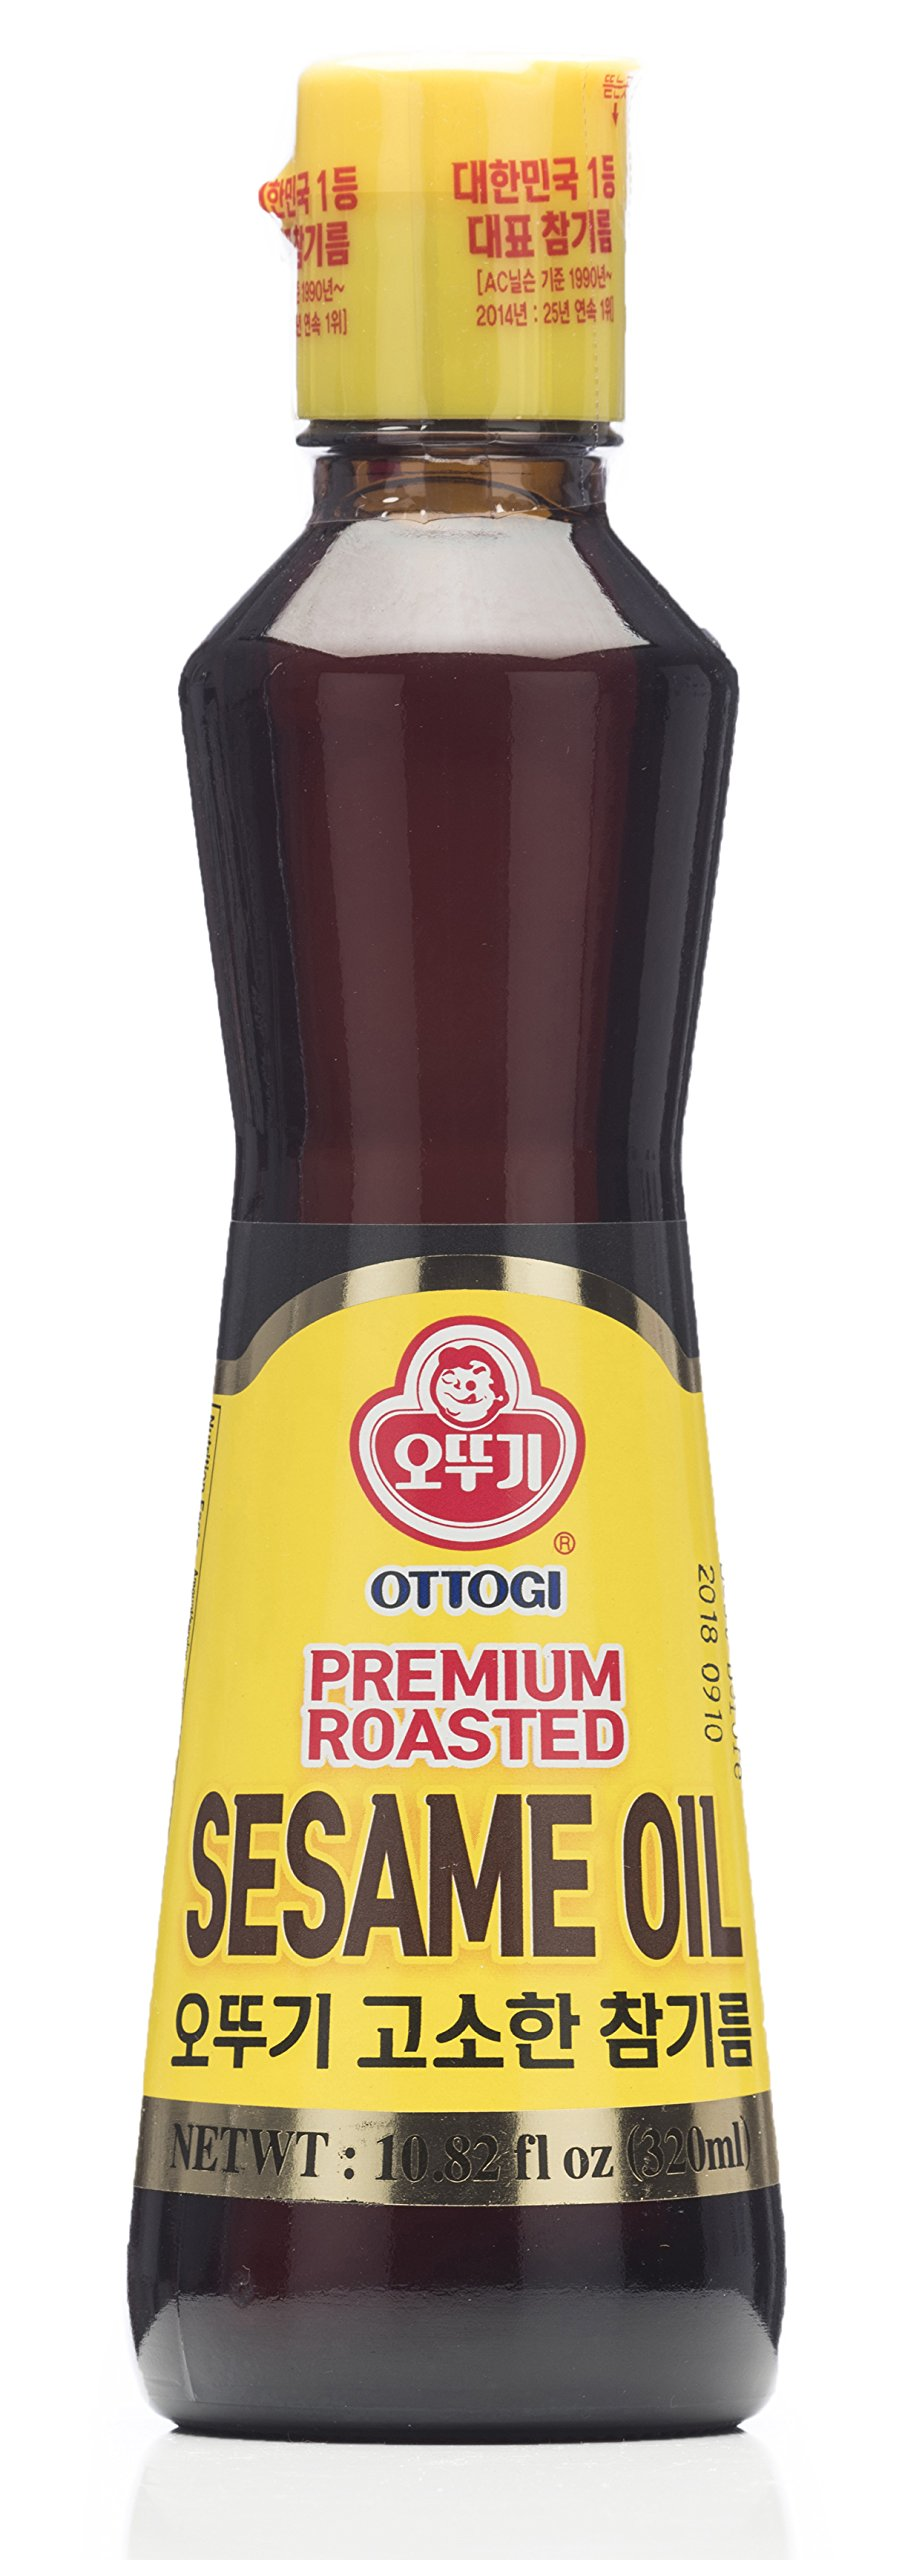 Ottogi Premium Roasted Sesame Oil, 10.82 Ounces